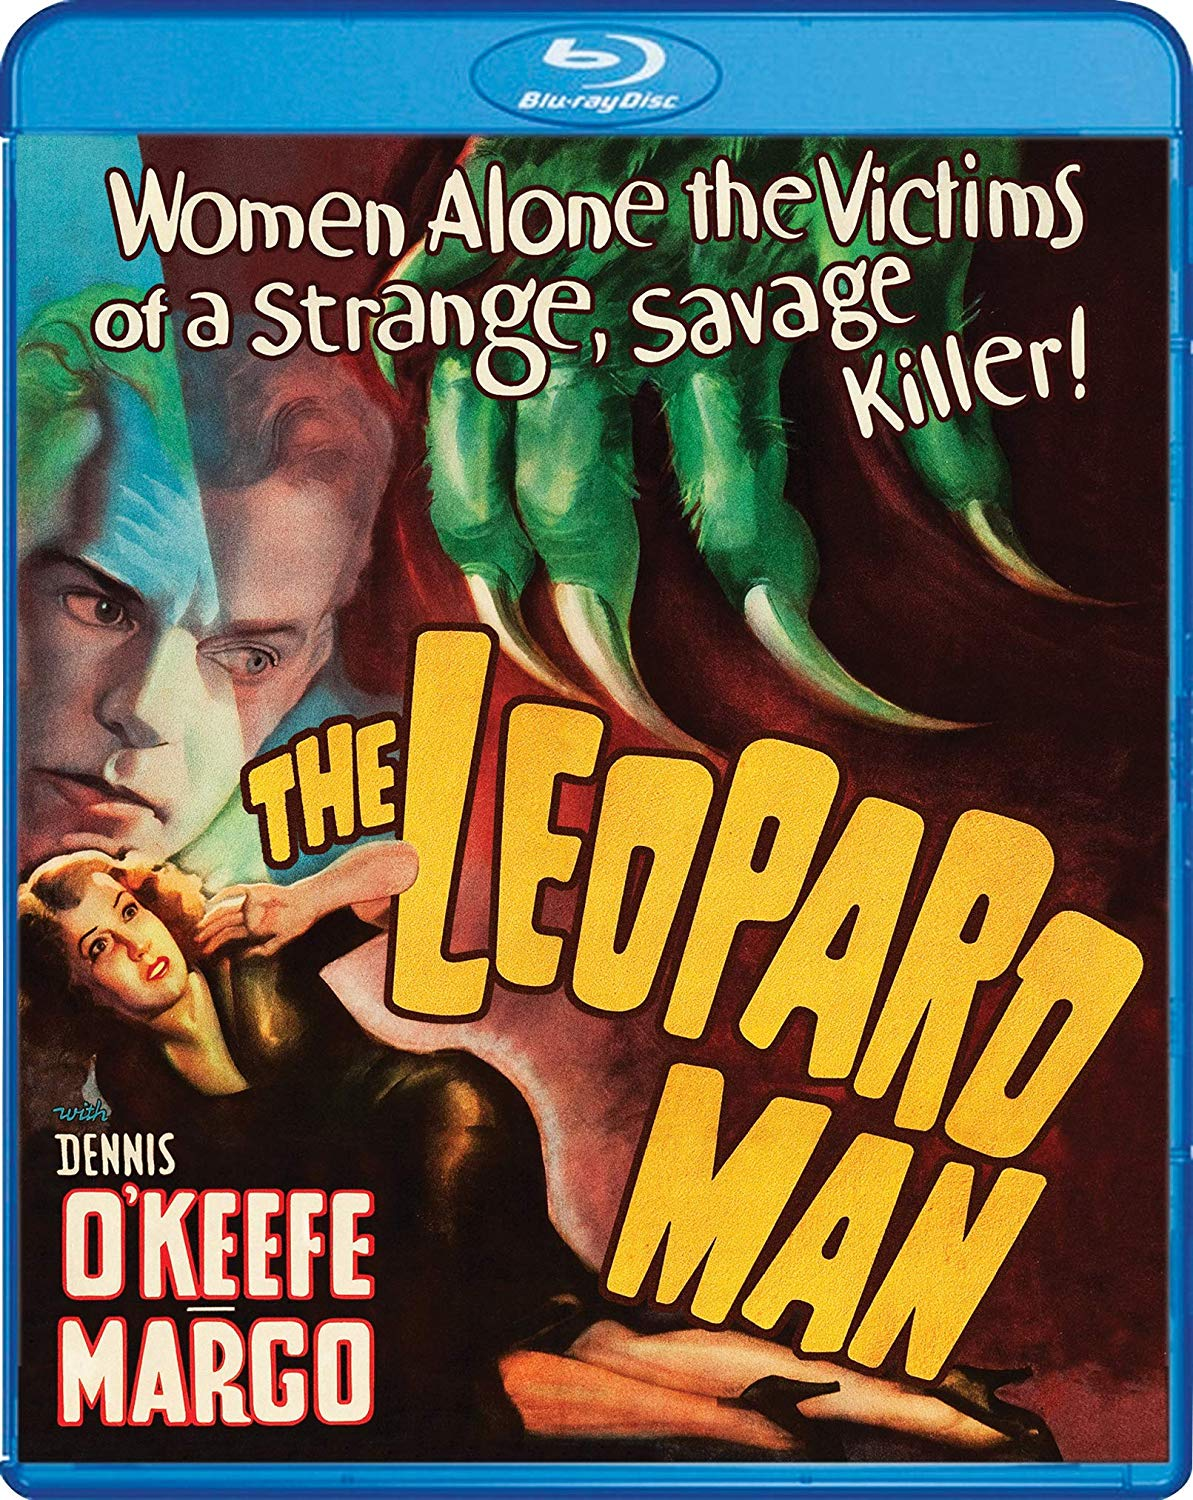 Movie quotes from Val Lewton's The Leopard Man